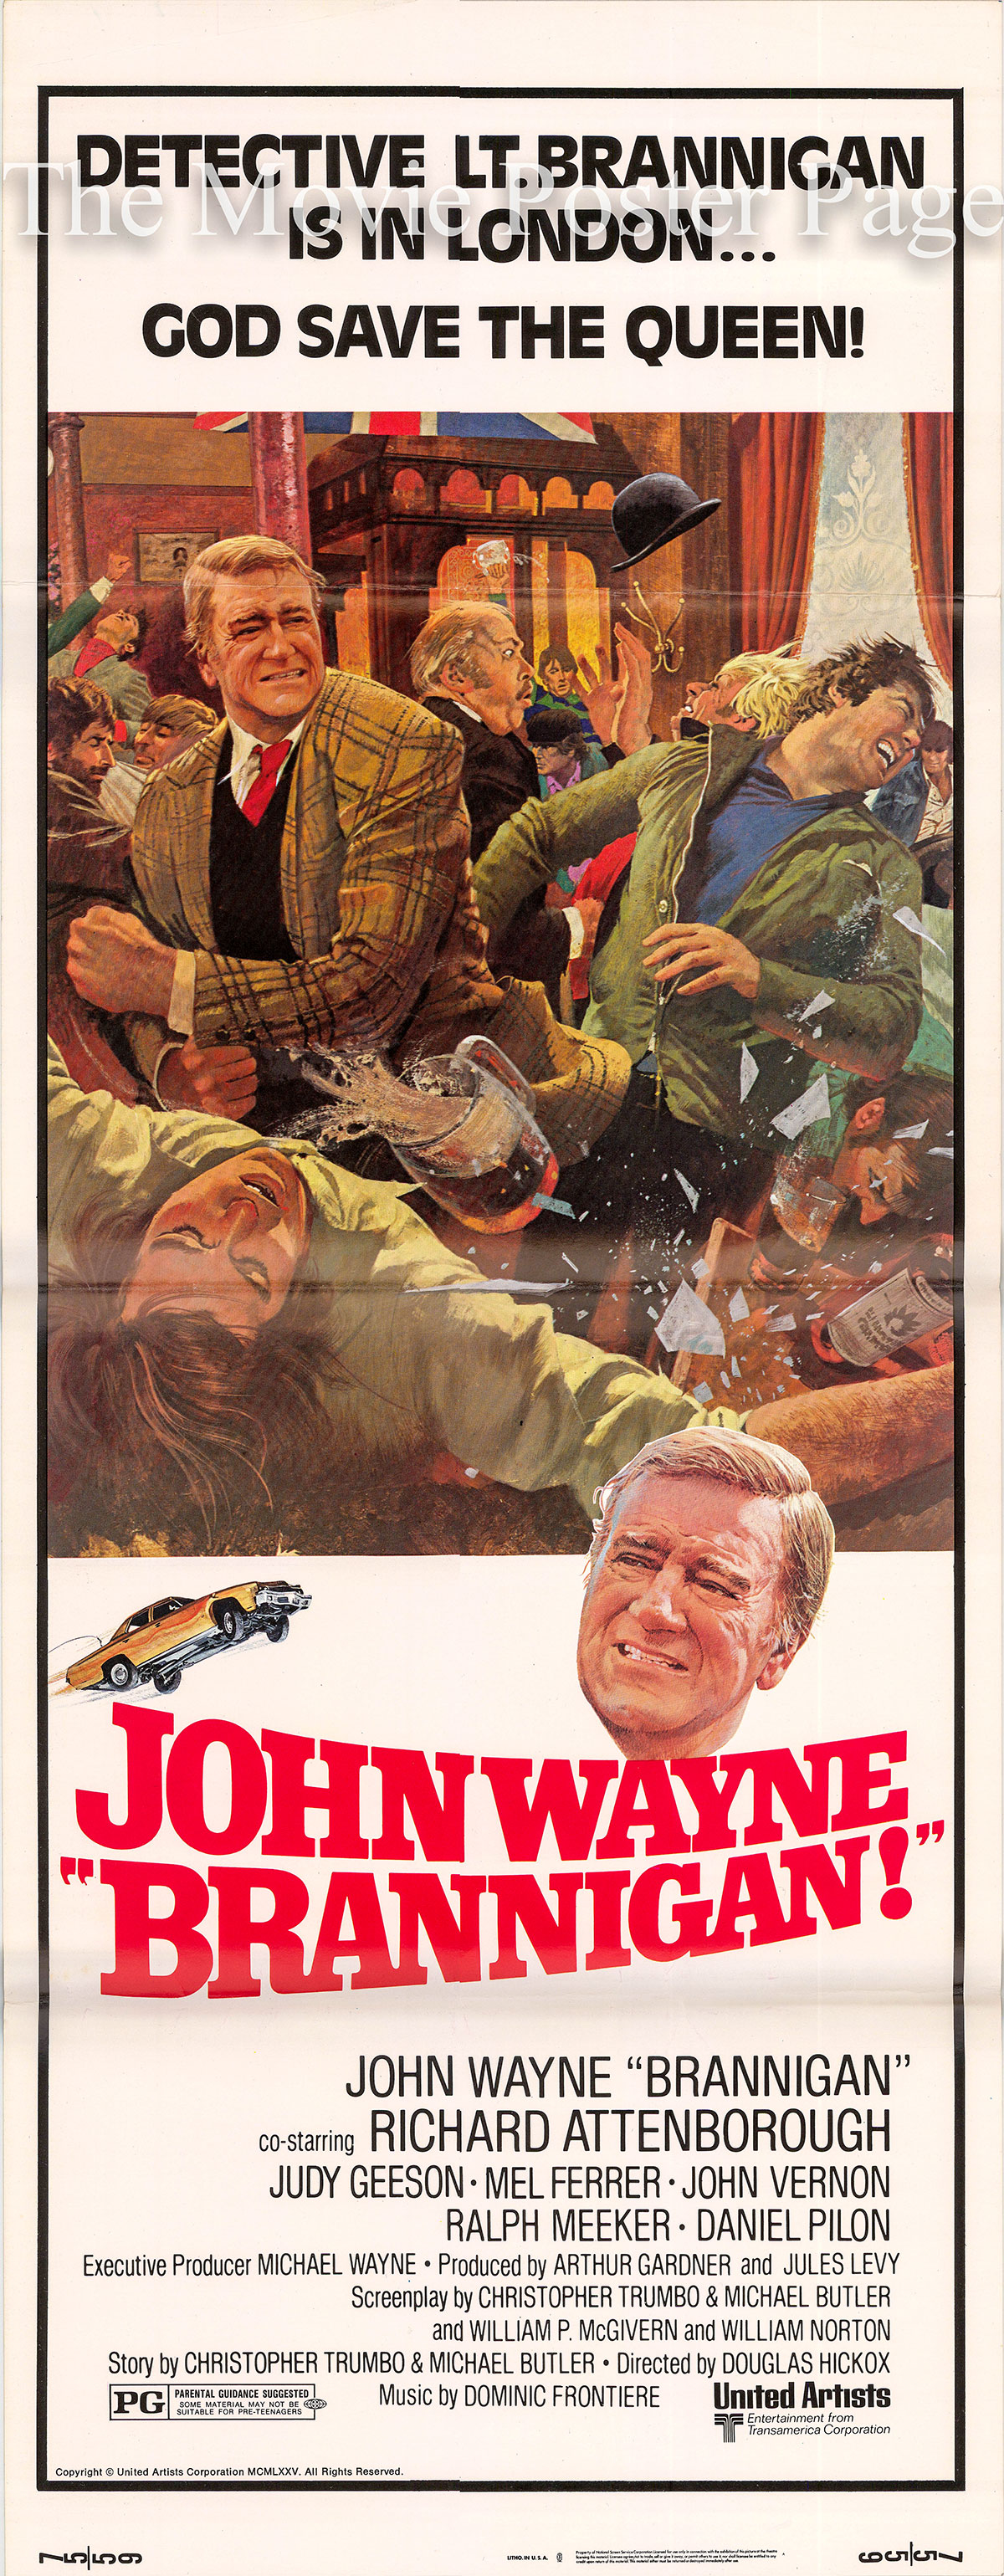 Pictured is a US insert poster for the 1975 Douglas Hickox film Brannigan starring John Wayne.